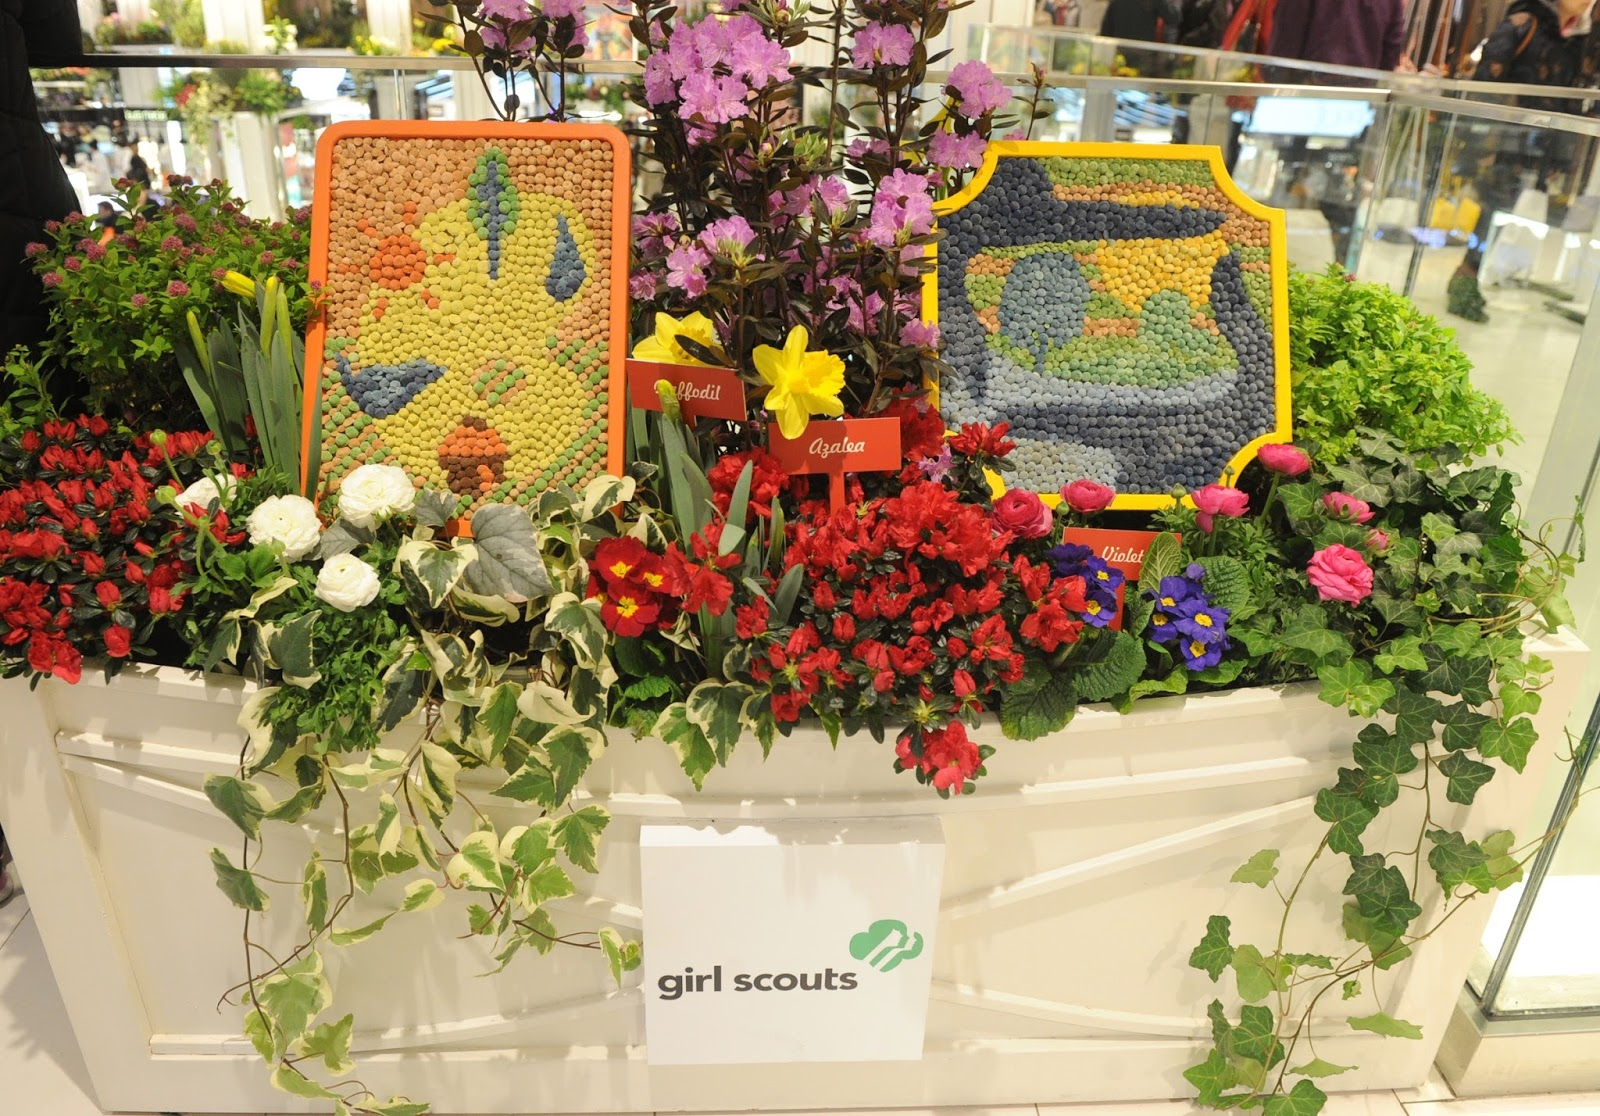 The second annual Girls' Choice Badges revealed at the Macy's Flower Show at